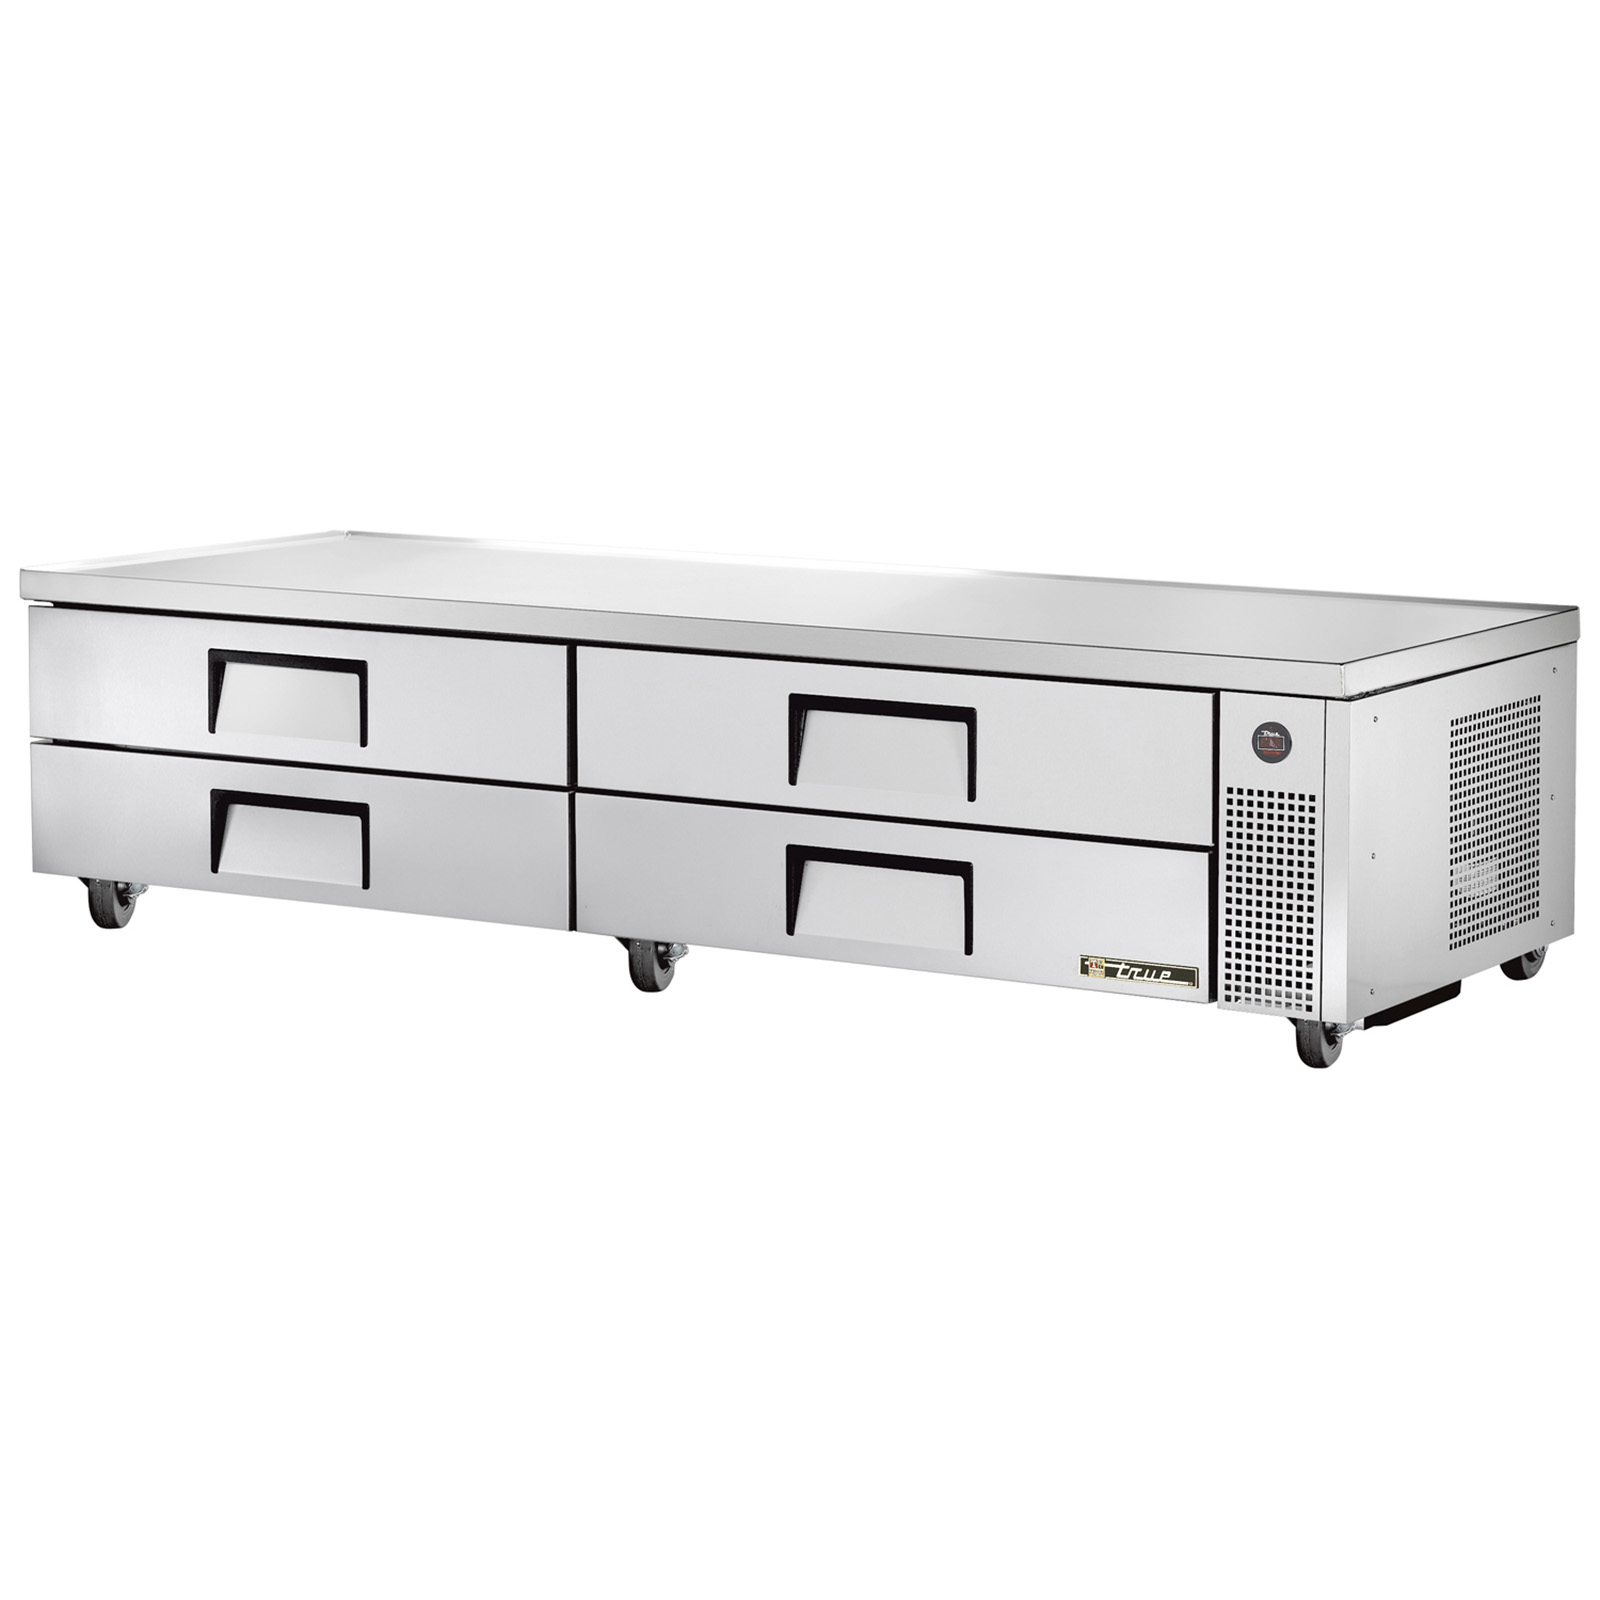 TRCB-96 True - Refrigerated Chef Base 95-1/2